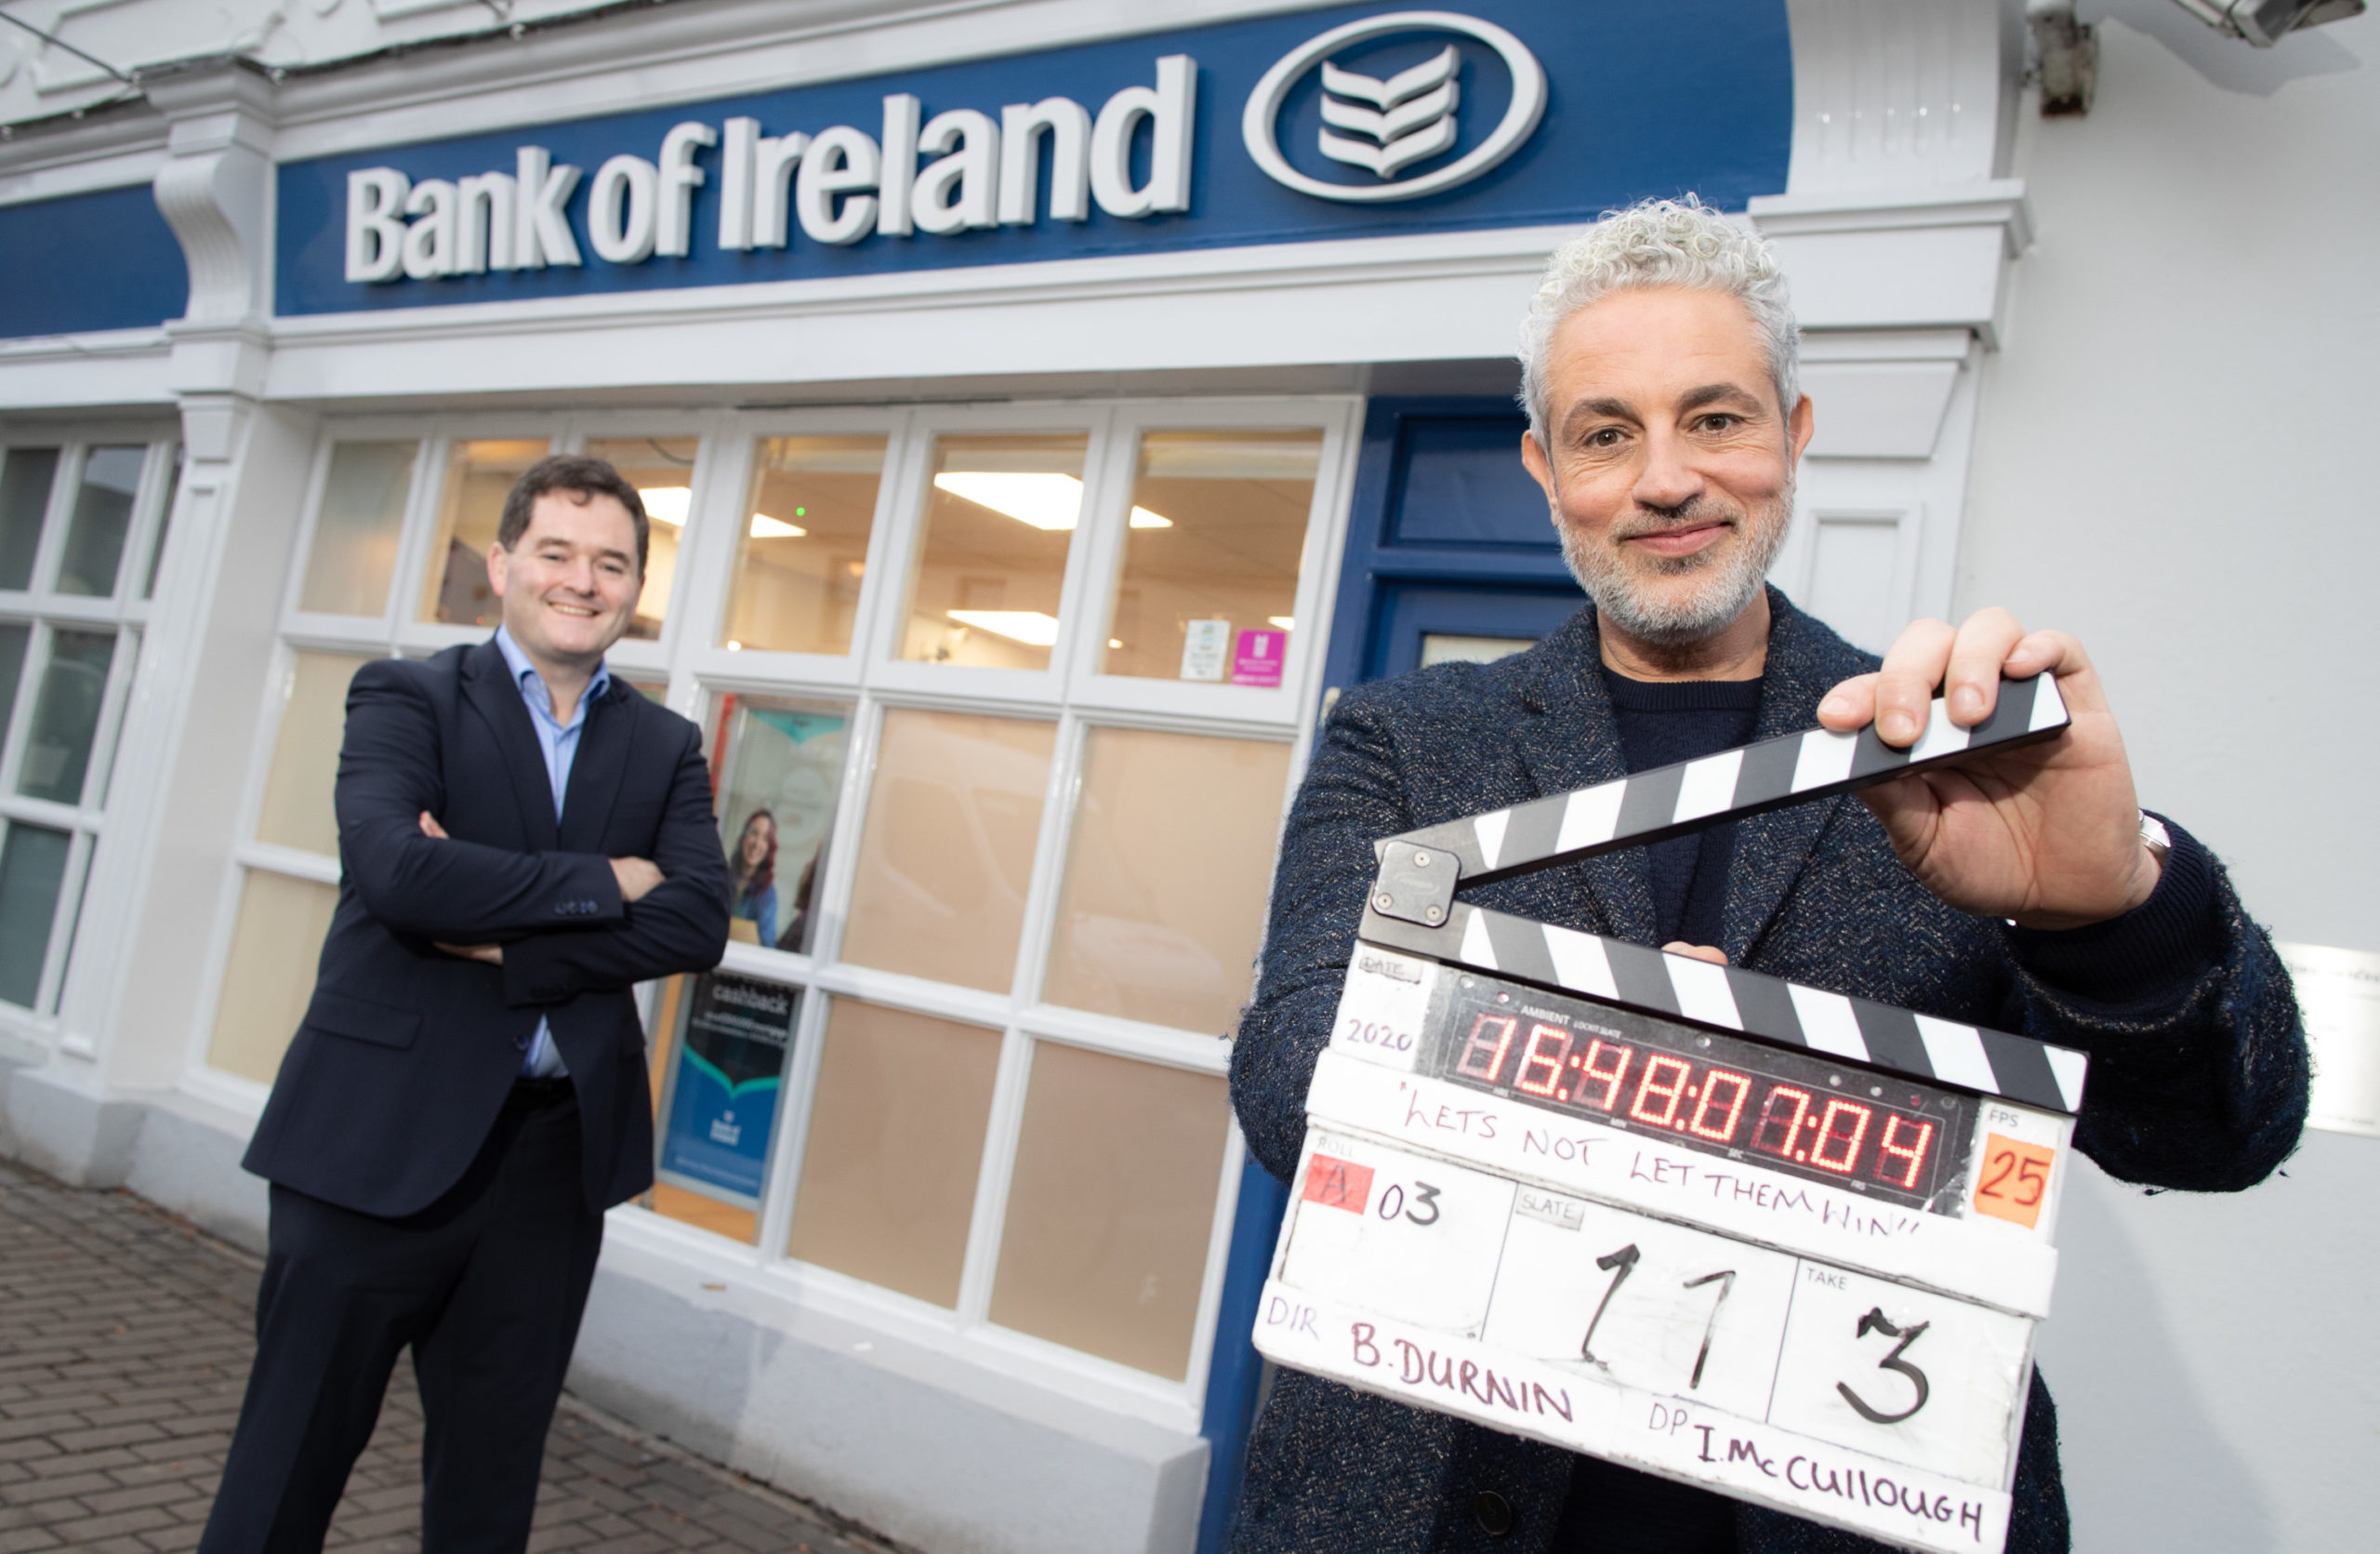 Bank of Ireland fraud campaign with Baz Ashmawy